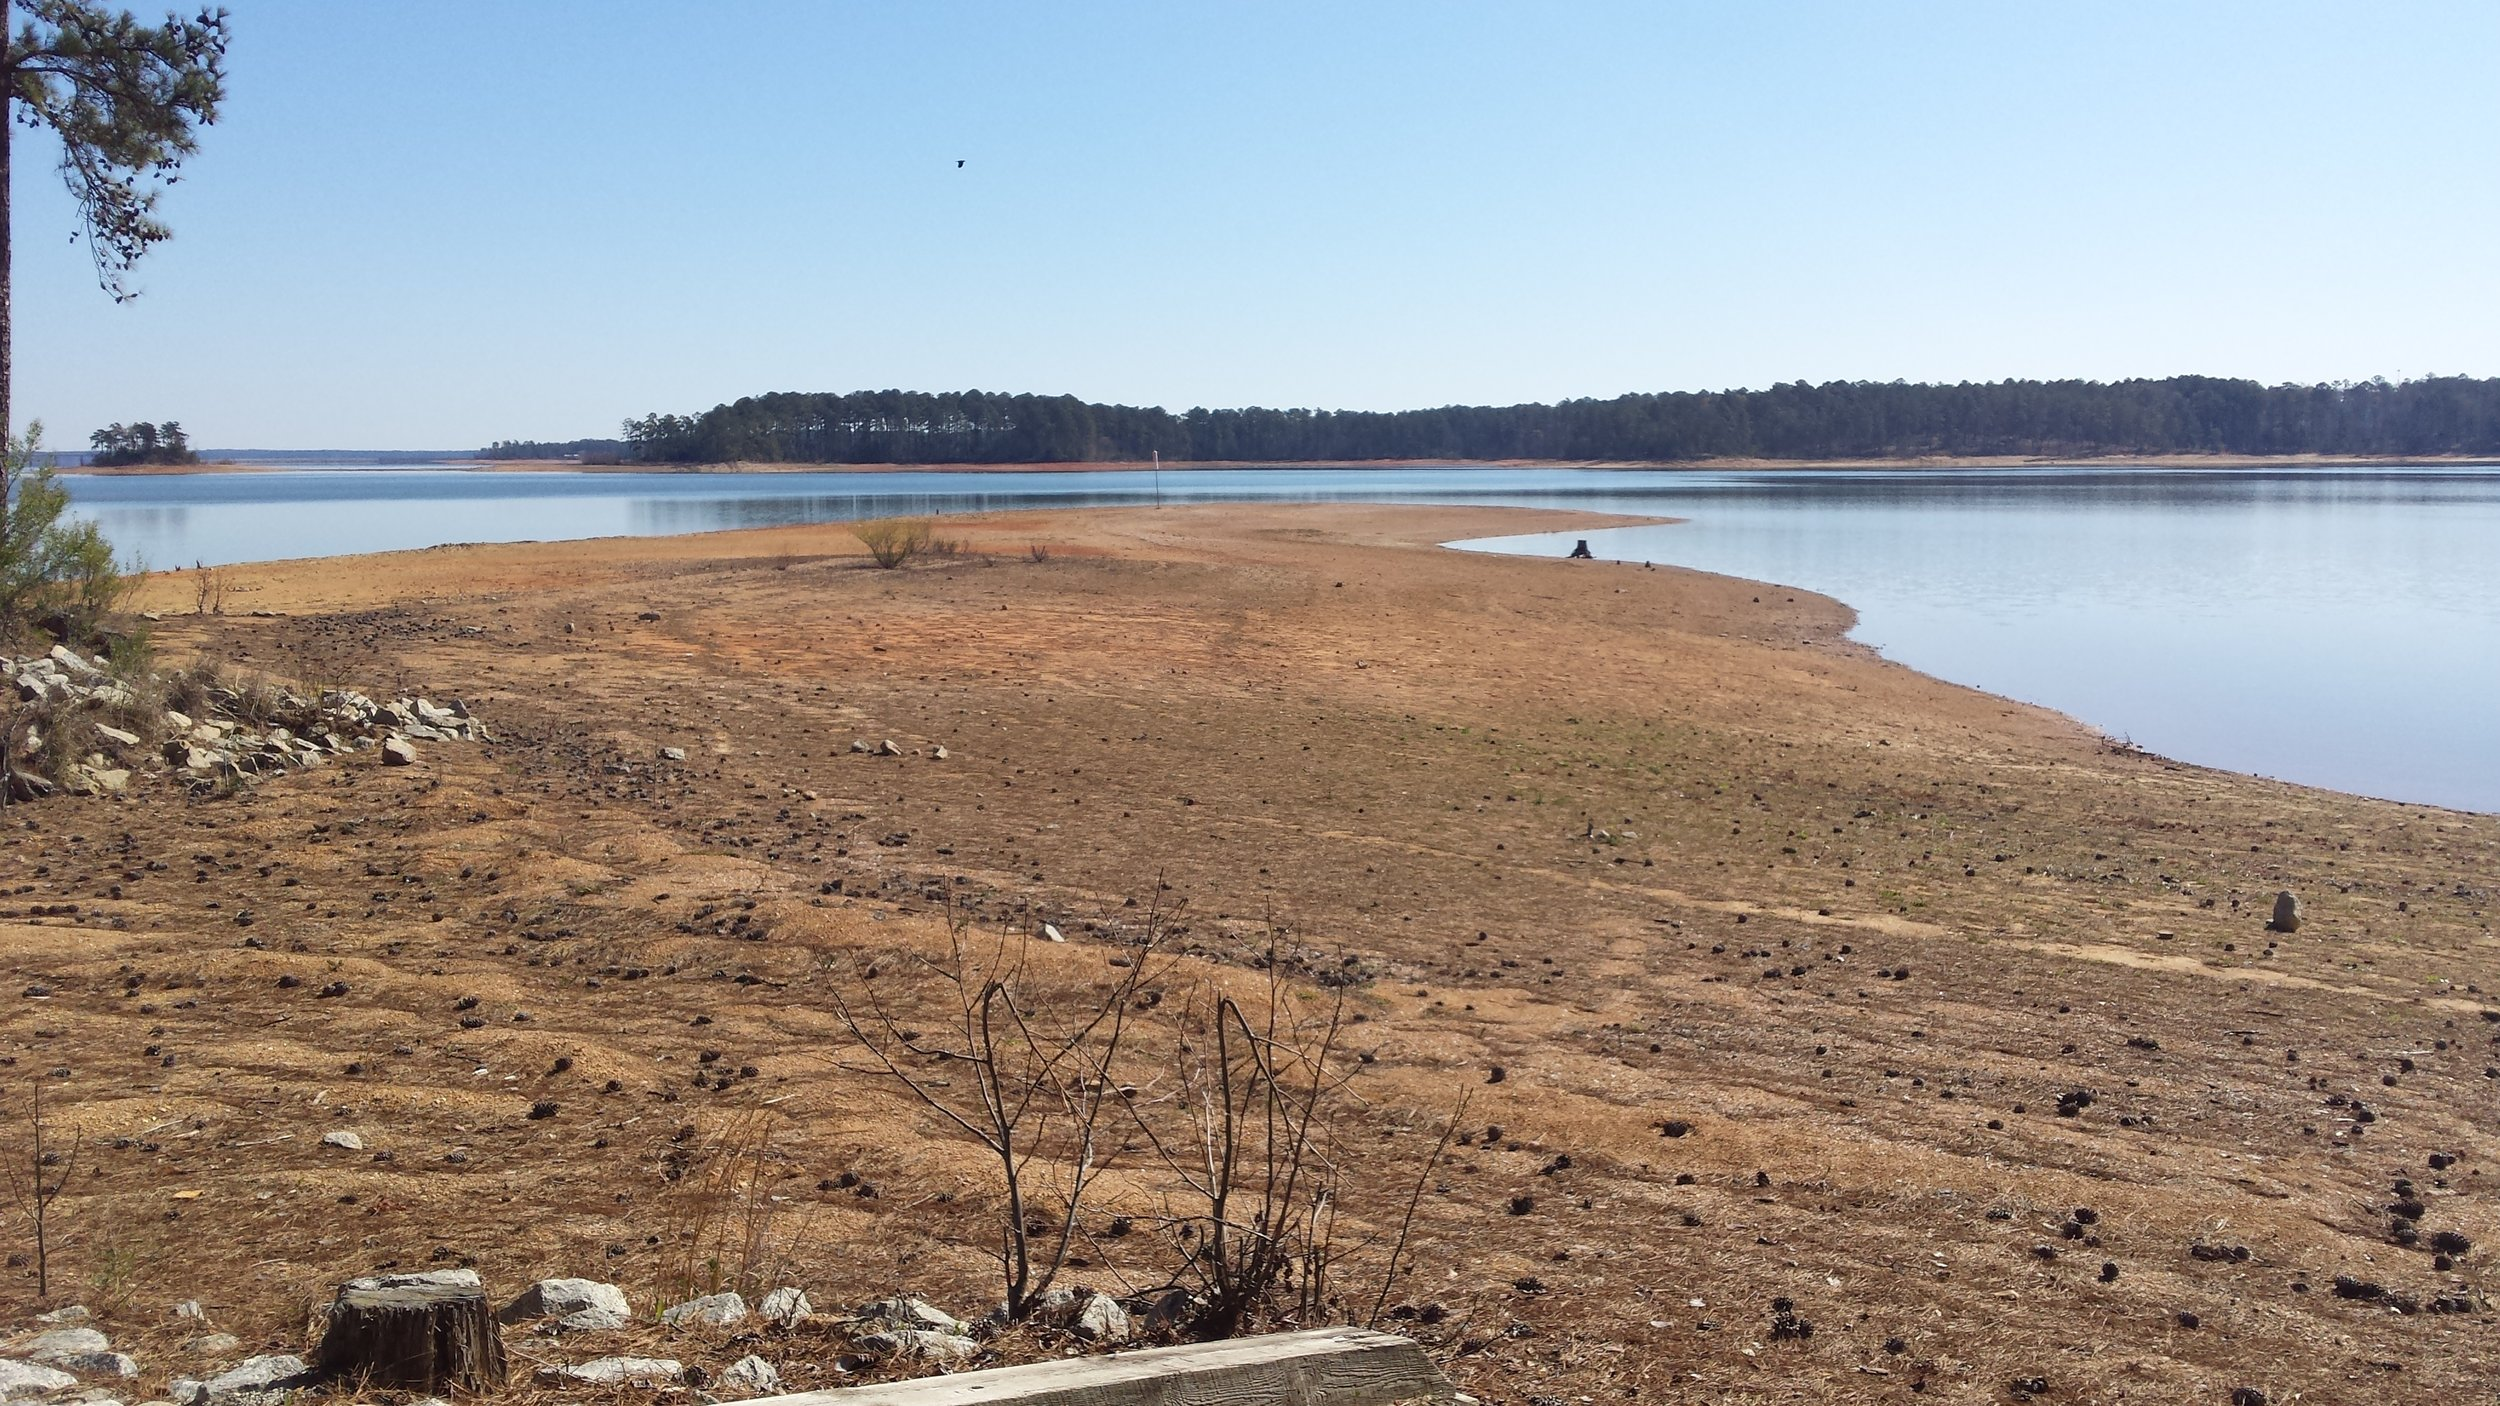 Winter low-water level at Clarks Hill Lake, Appling, Georgia